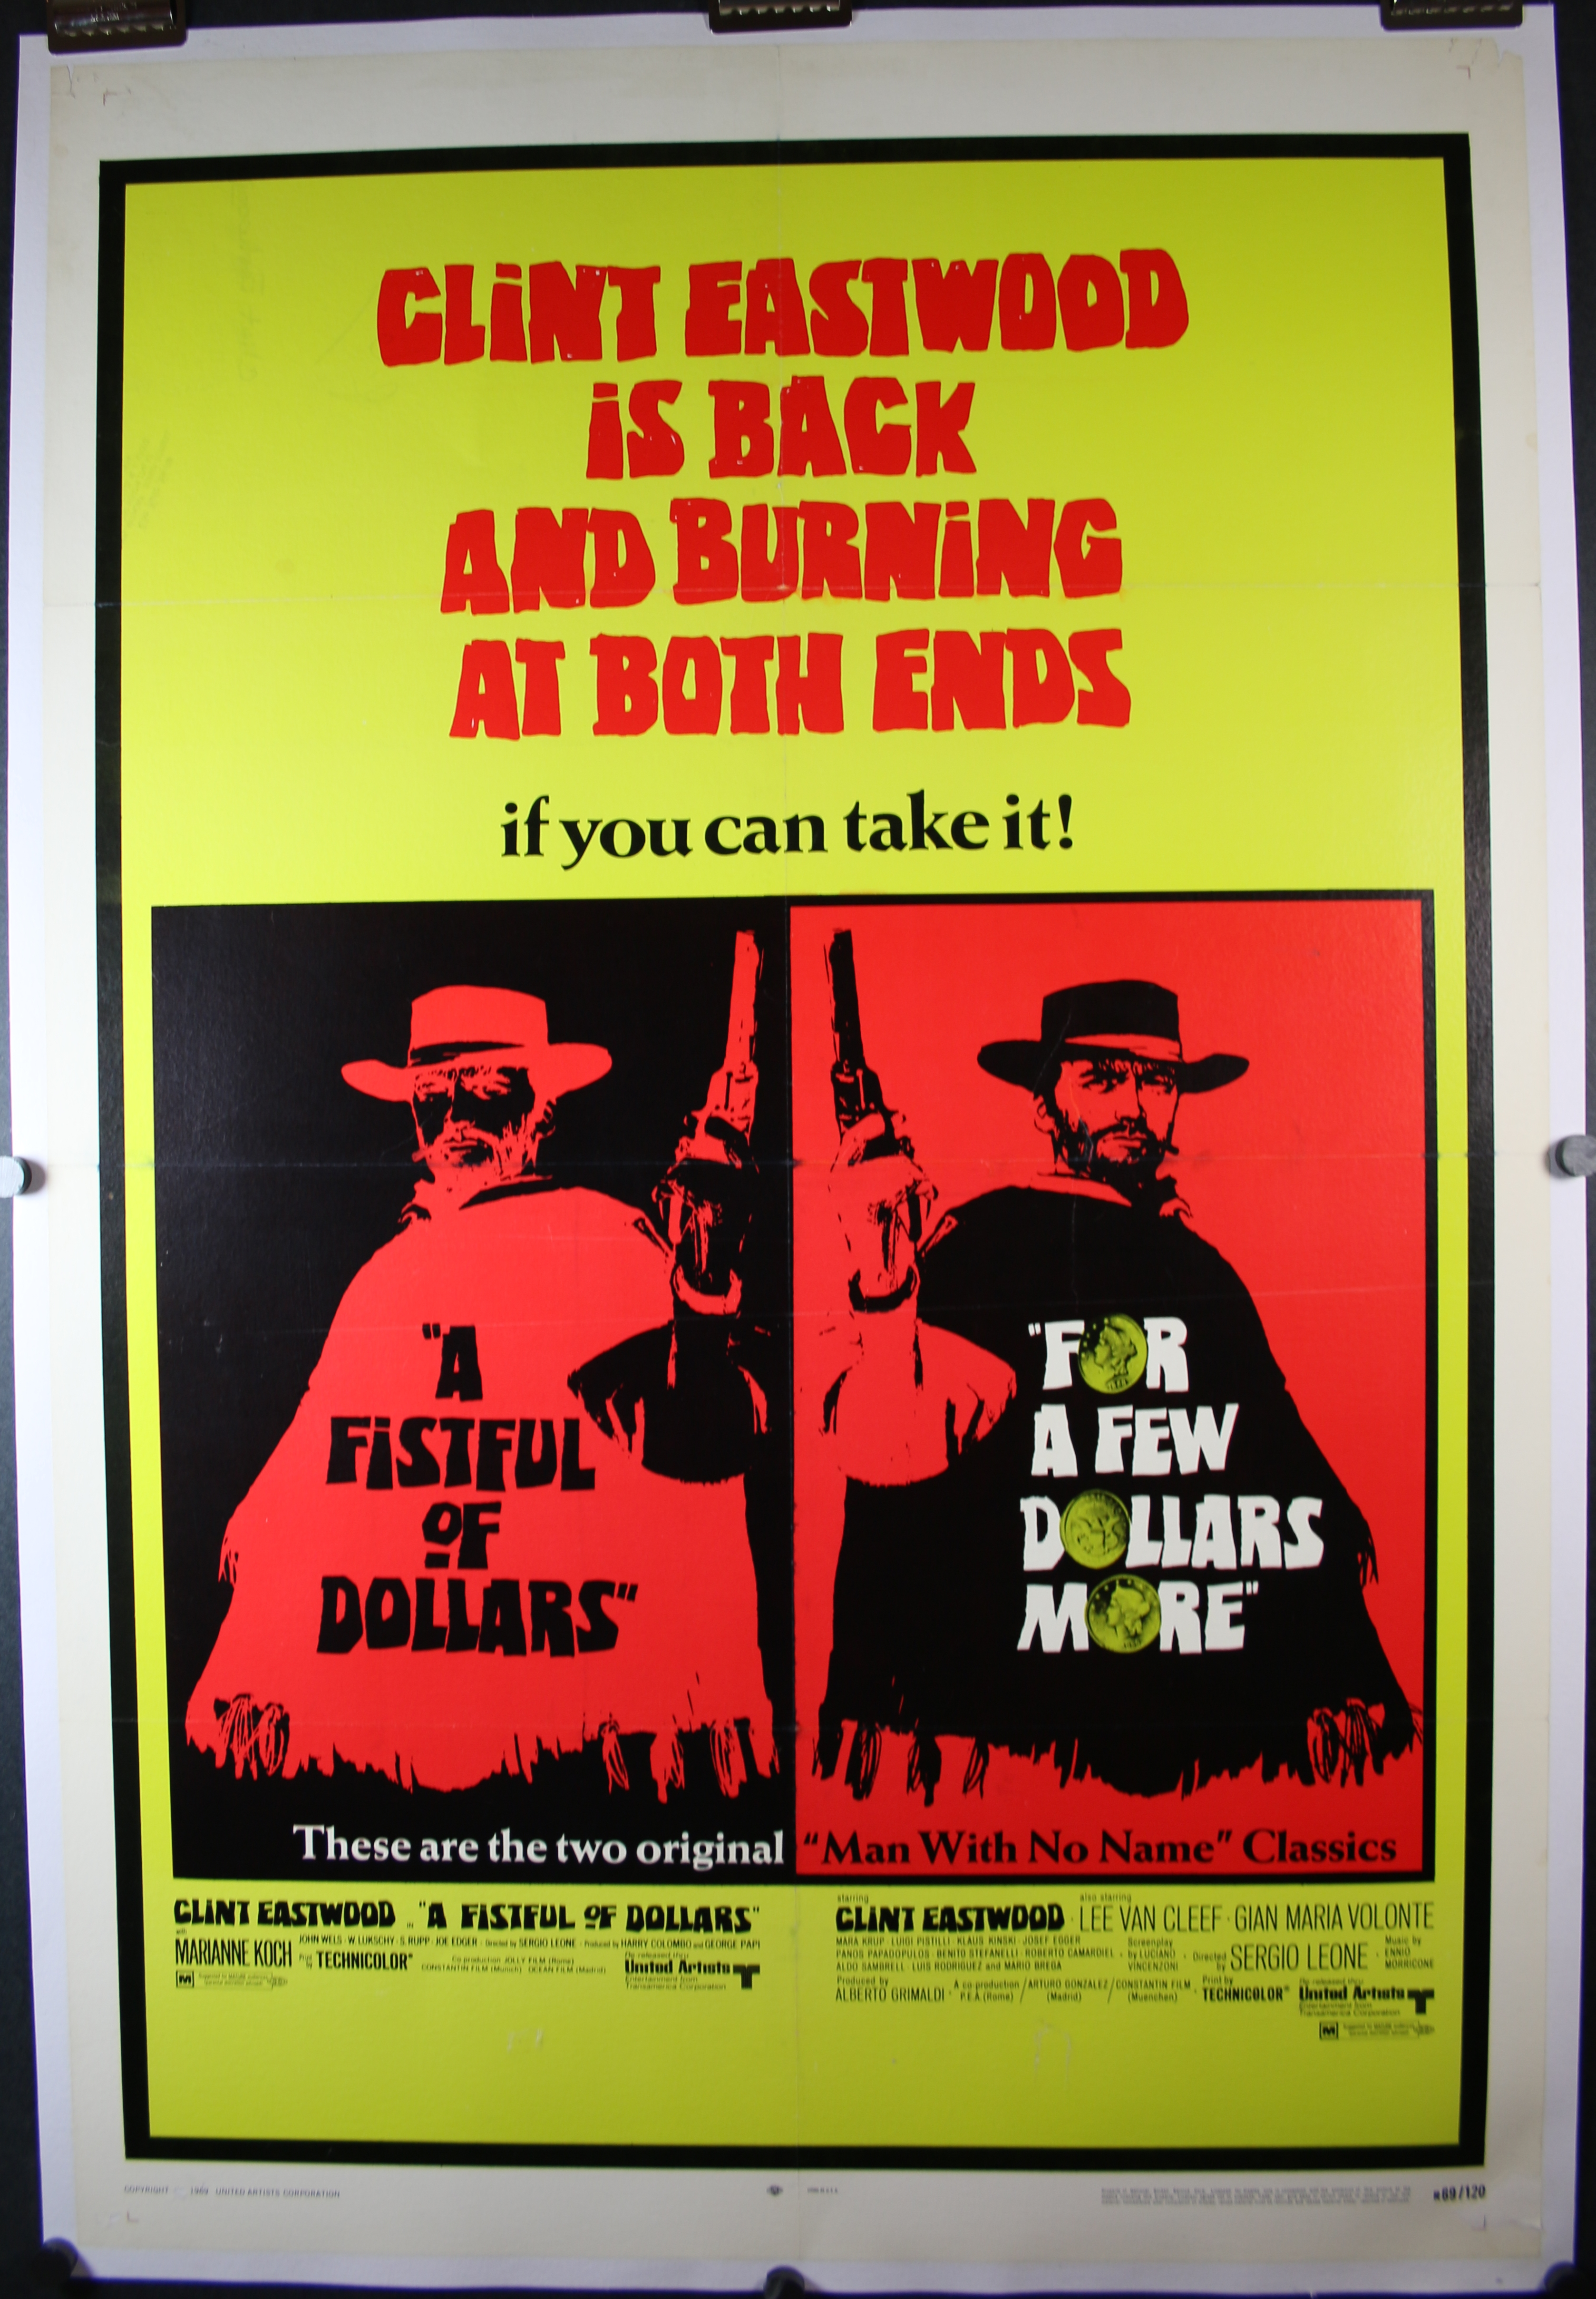 Fistful of dollars Few Dollars More 4080 LB